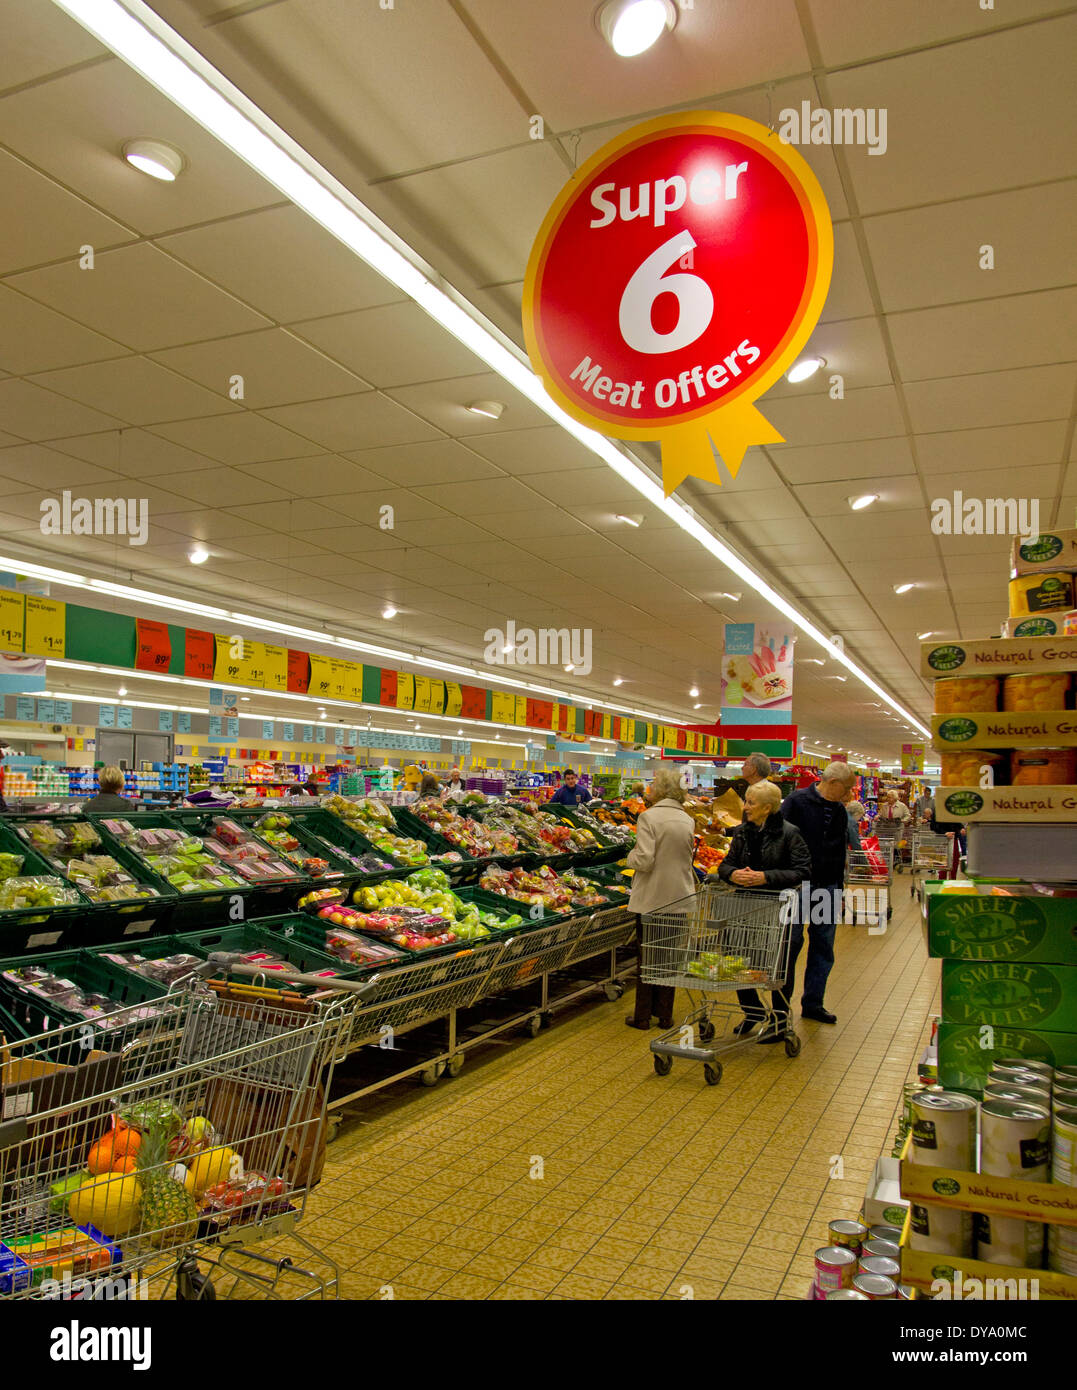 display of fresh vegetables and offers in Aldi discount supemarket - Stock Image